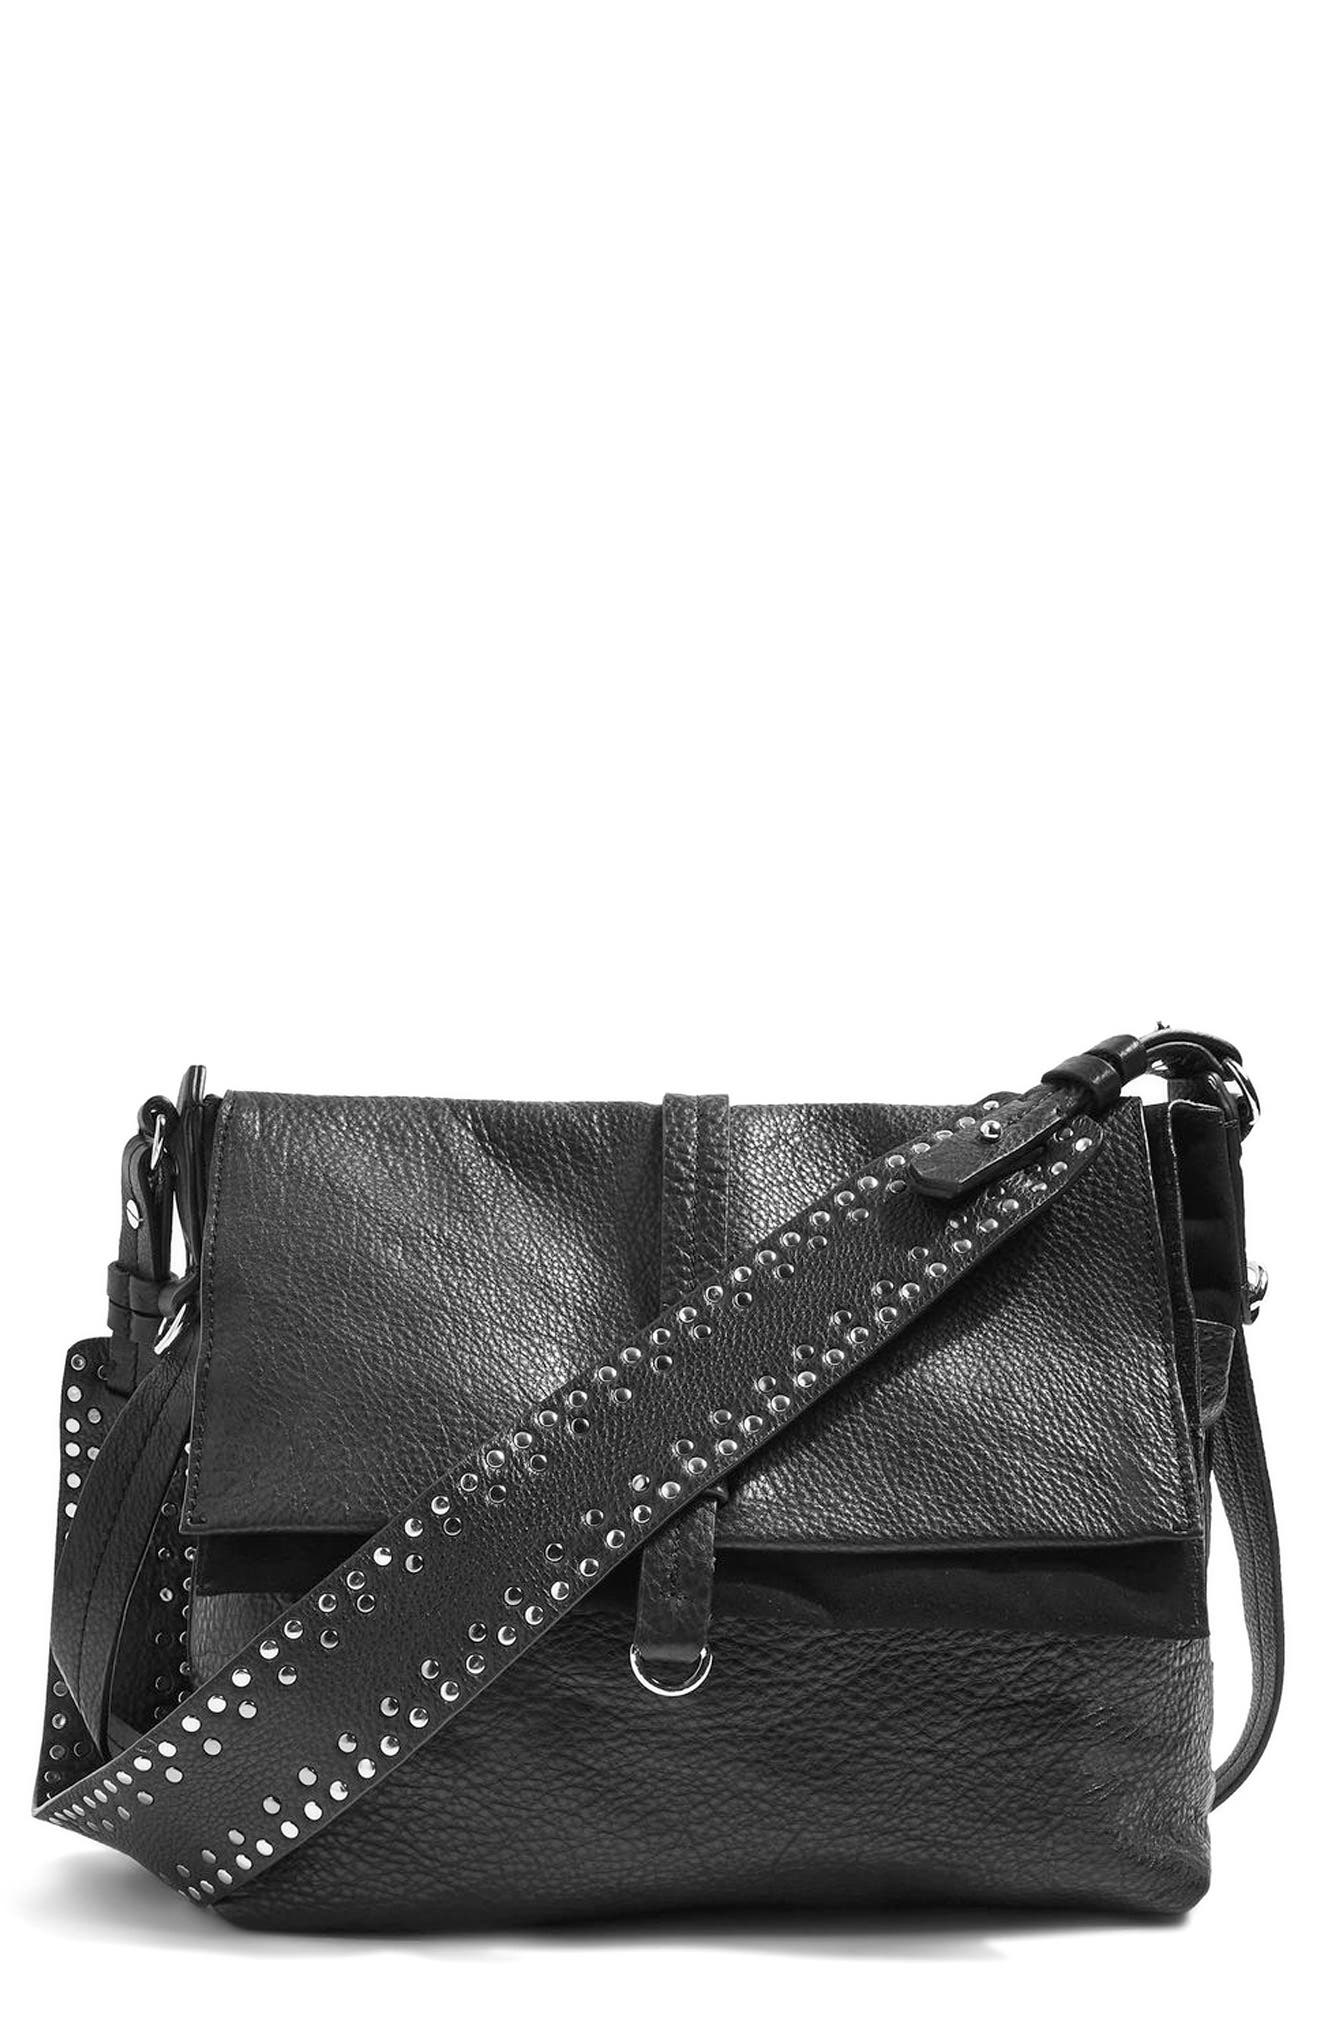 Topshop Studded Calfskin Leather Hobo Bag